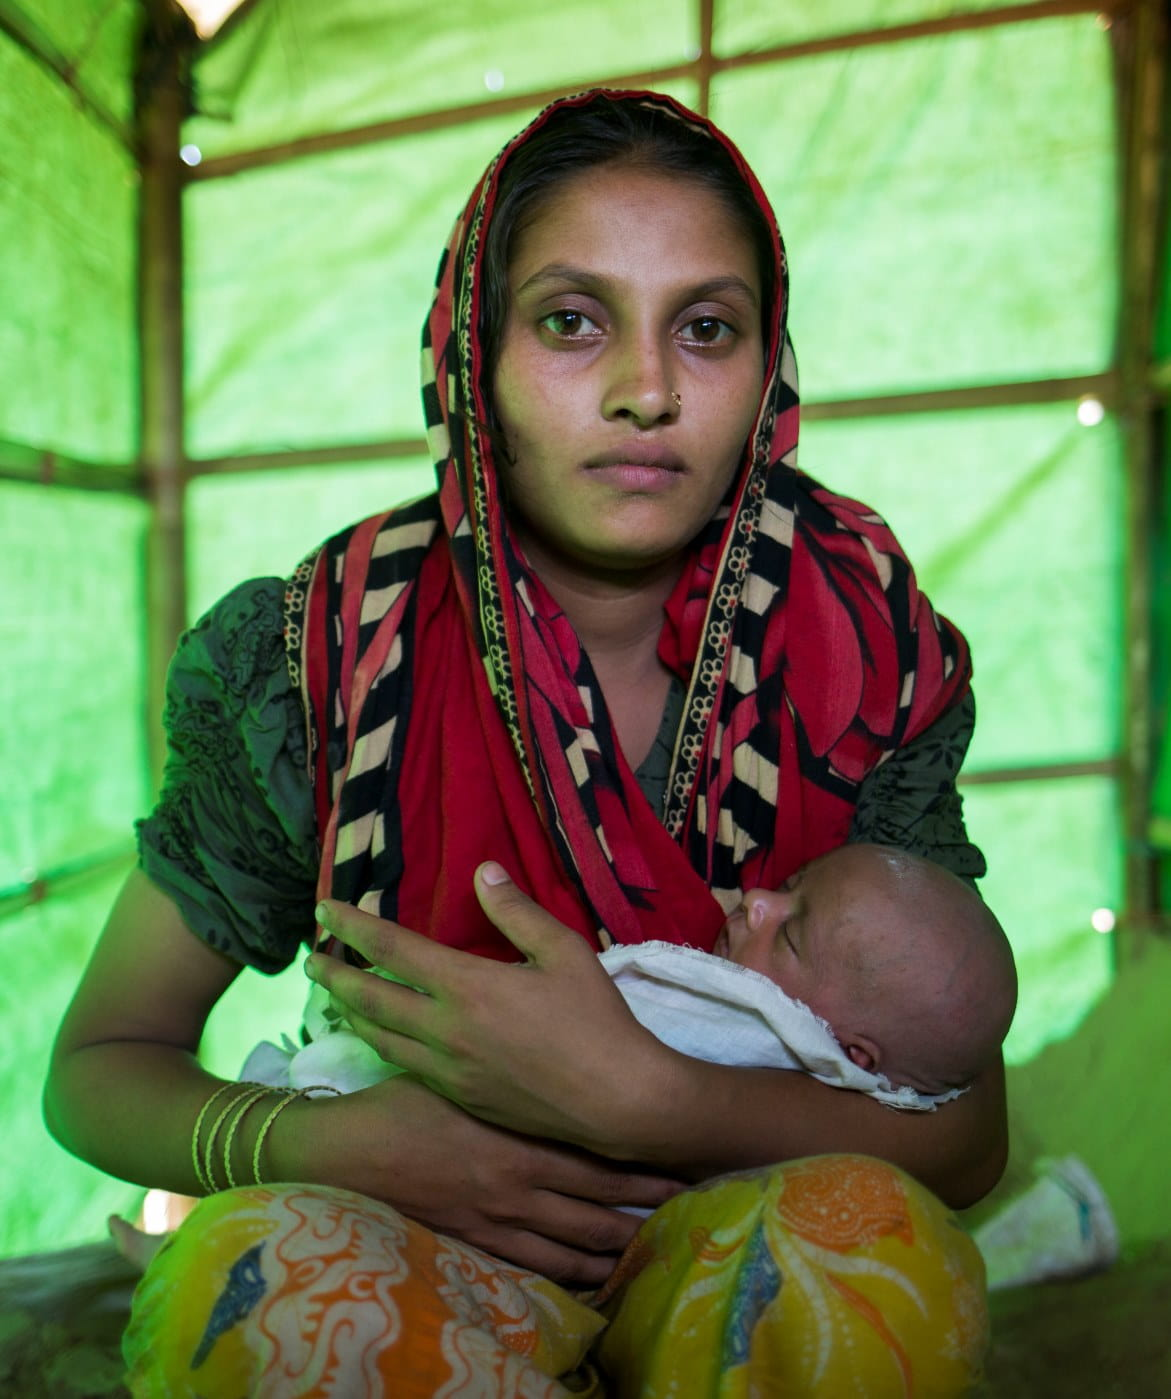 Woman and child in Yemen